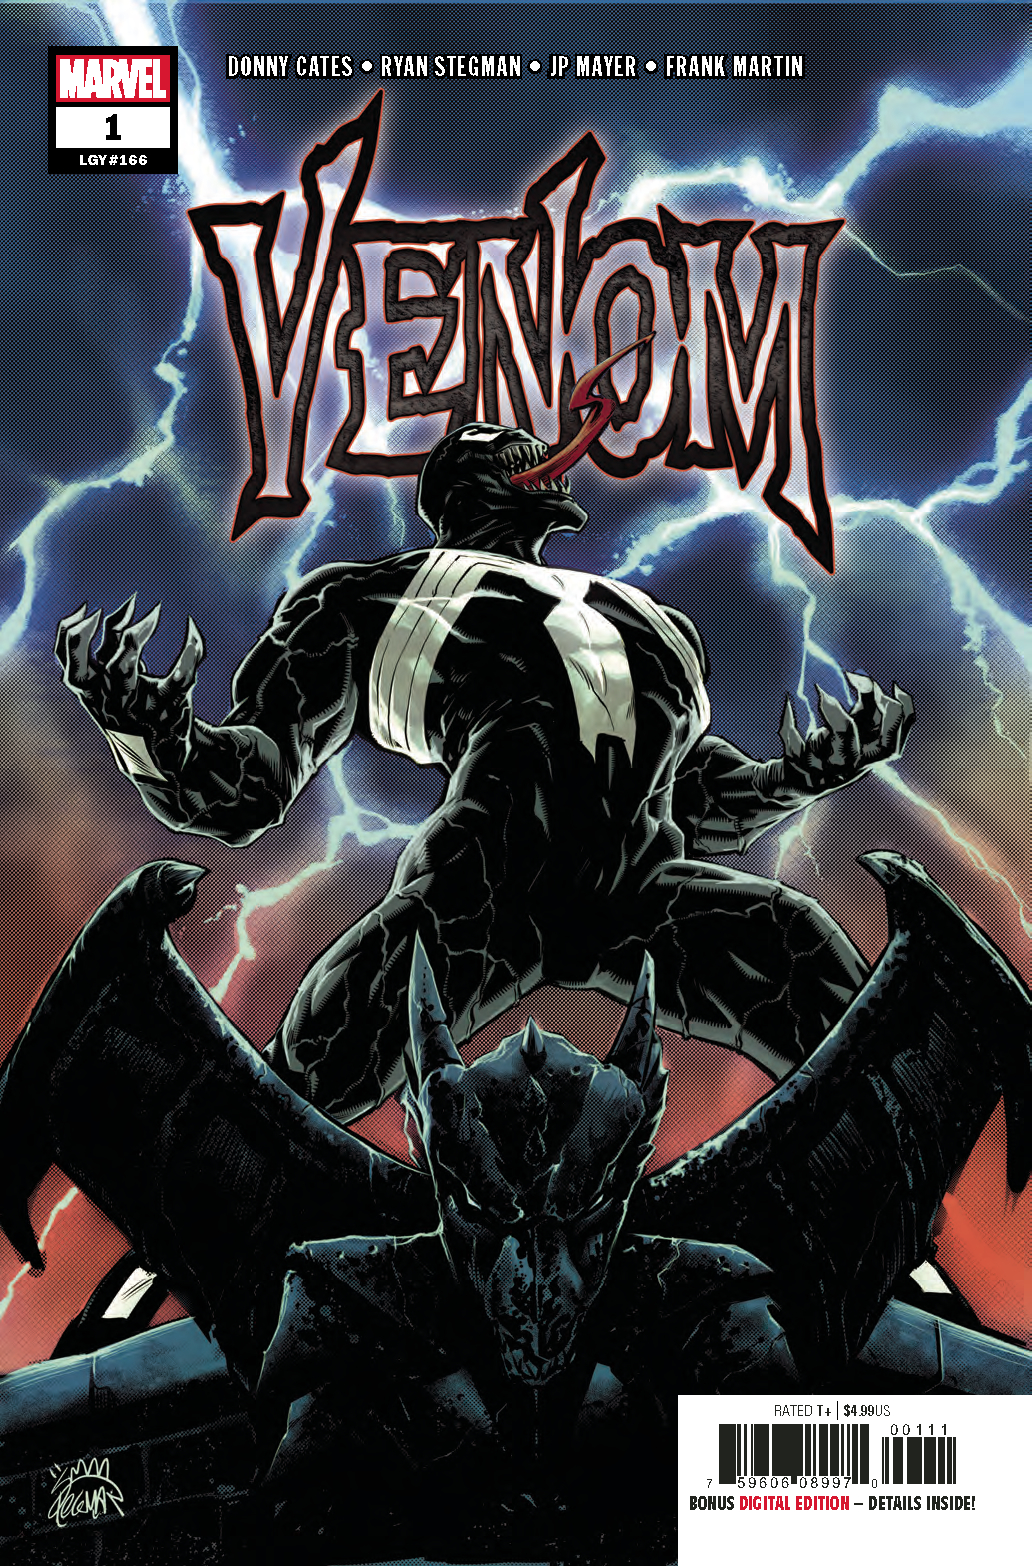 Avengers And Venom Go To Fourth Printing Immortal Hulk To A